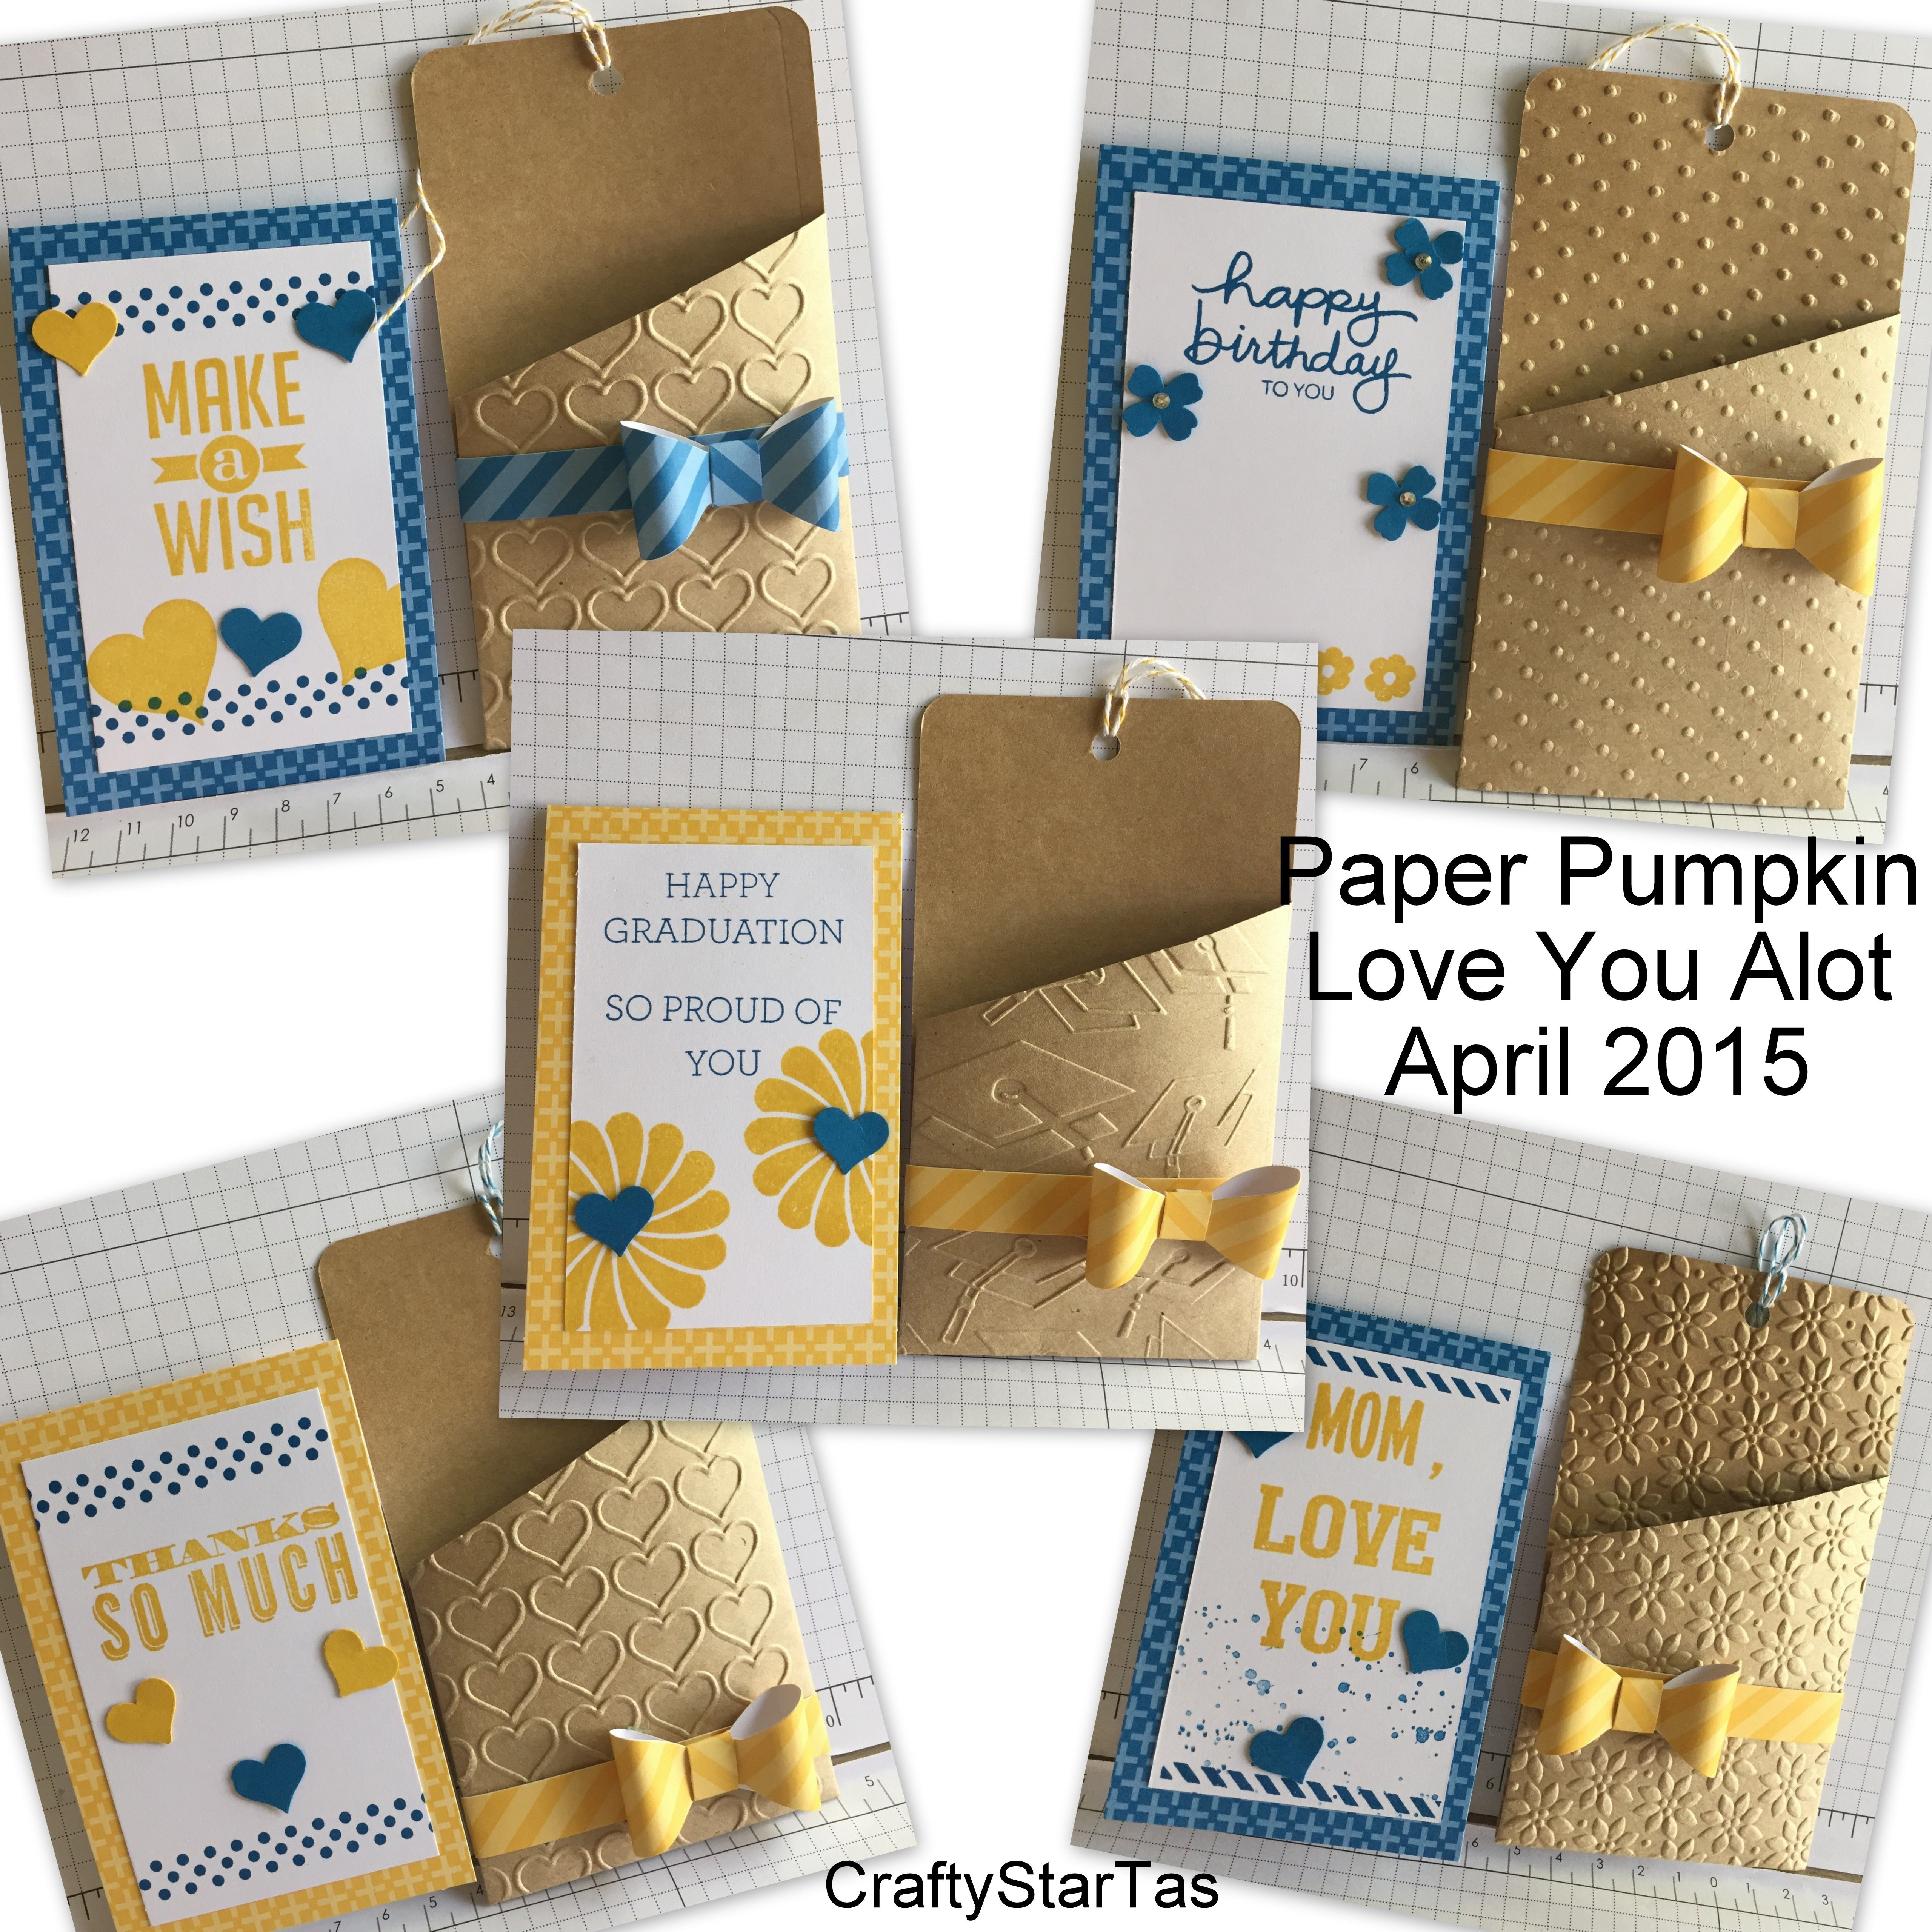 """Paper Pumpkin monthly subscription kit! April 2015 """"Love You Alot"""". Alternate card ideas, used a couple punches, and other stamp sets. The embossing folders really make these adorable cards pop!"""